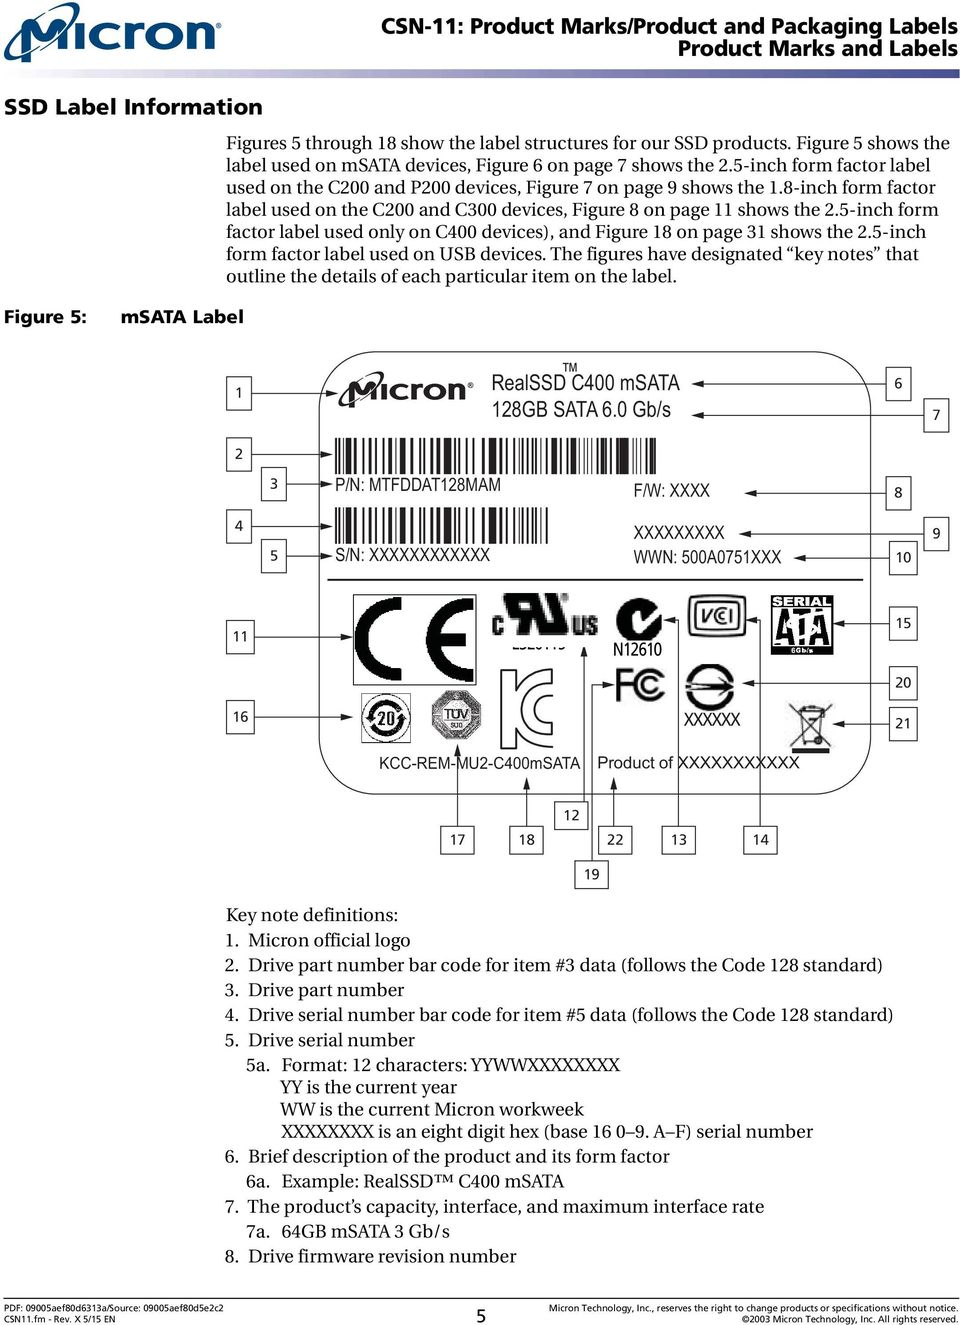 8-inch form factor label used on the C200 and C300 devices, Figure 8 on page 11 shows the 2.5-inch form factor label used only on C400 devices), and Figure 18 on page 31 shows the 2.